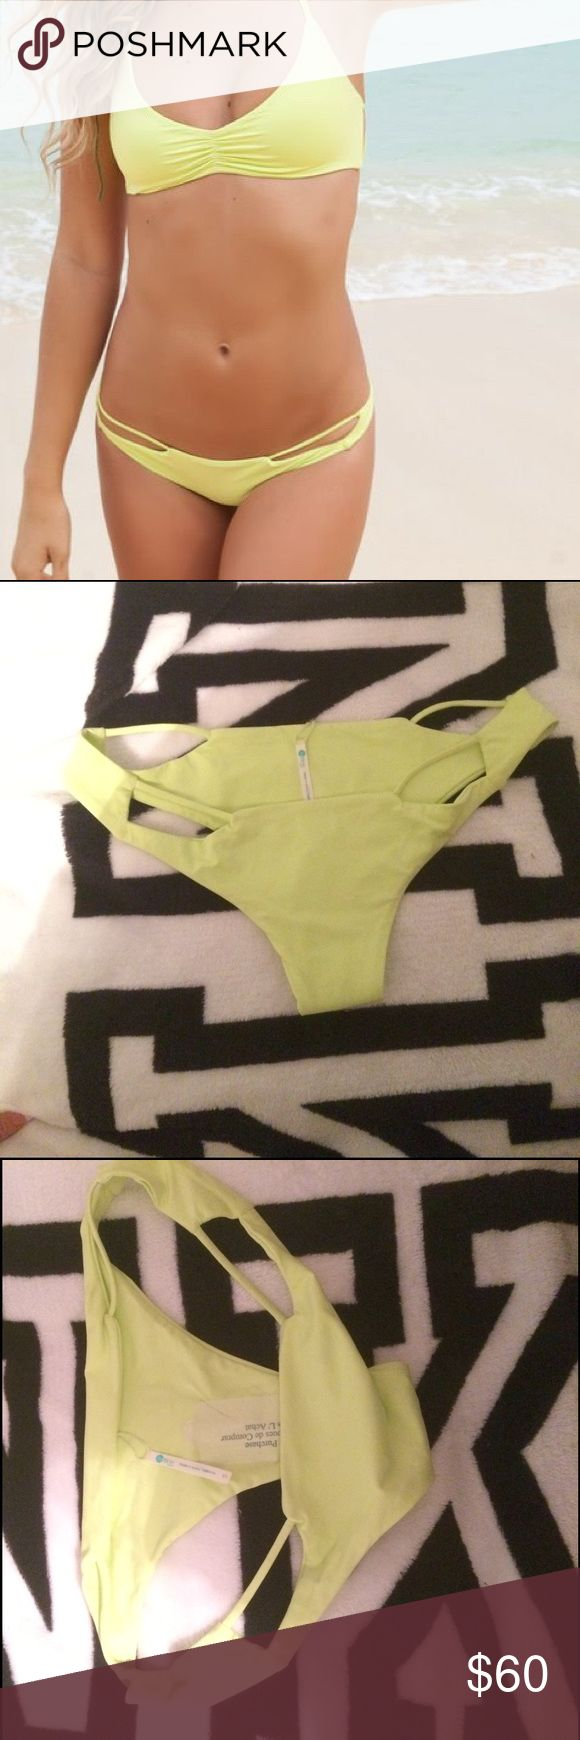 Bettinis Acid Lime new cut out Bikini bottom Small Brand new. This is color is really hard to find and I finally found it to match the top but it is too small for me :( (I wear size 4) bettinis Swim Bikinis